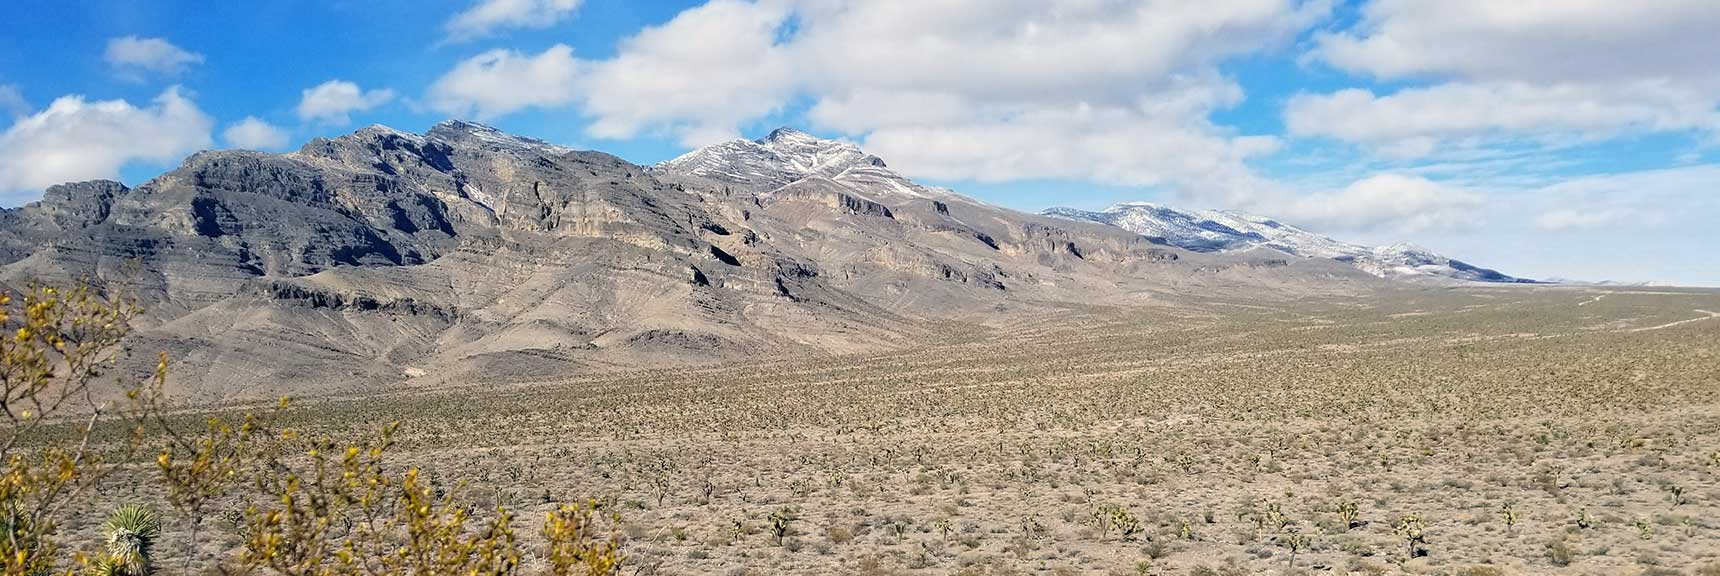 View of the East Side of the Sheep Range in the Desert National Wildlife Refuge, Nevada